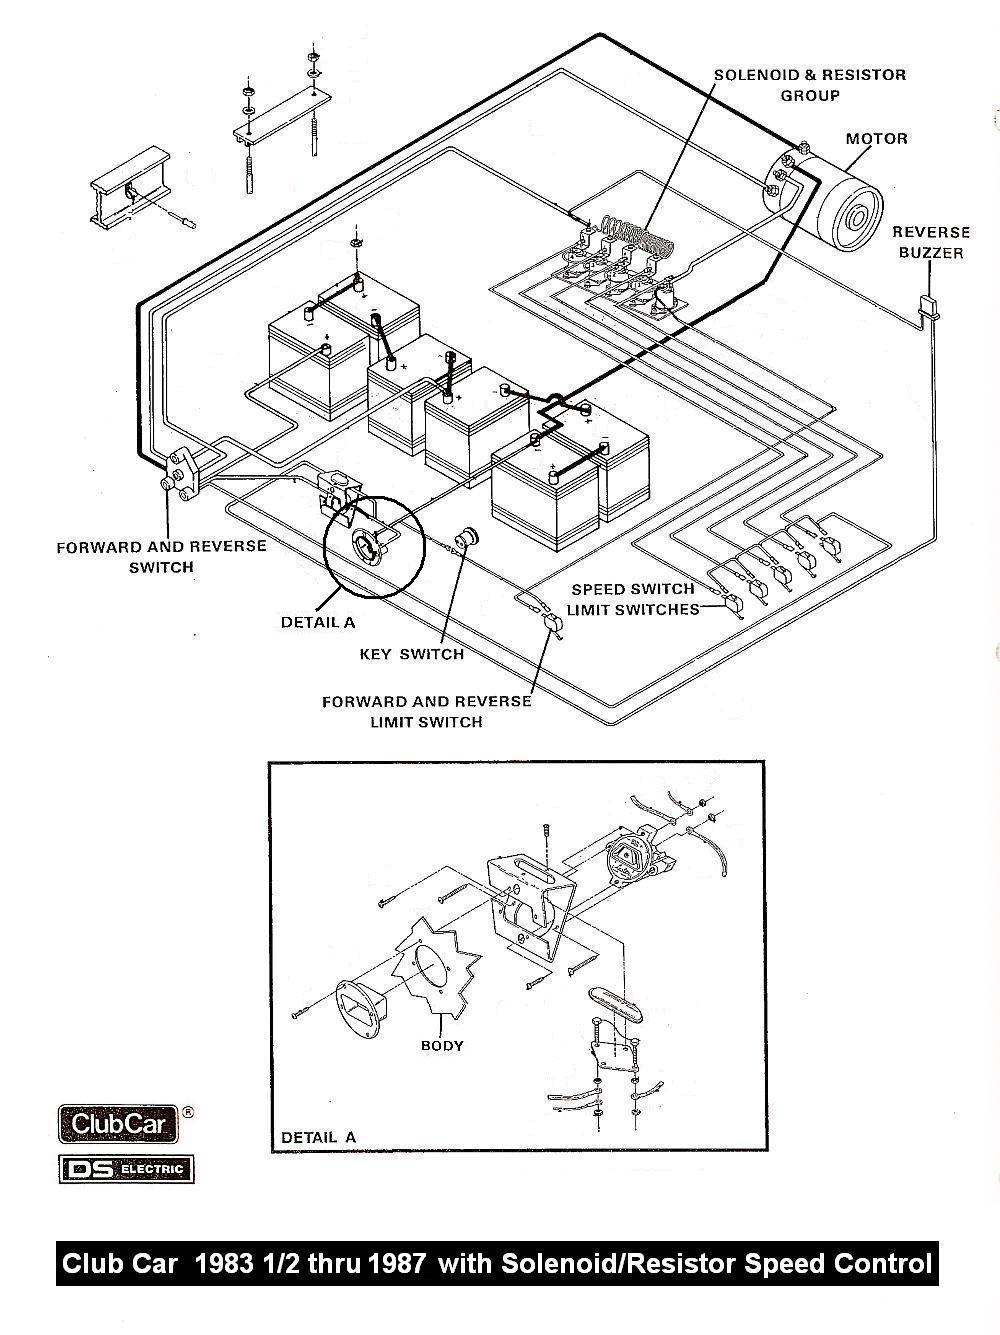 2002 Club Car Wiring Diagram 48 Volt - Wiring Diagram Data Oreo - Club Car Wiring Diagram